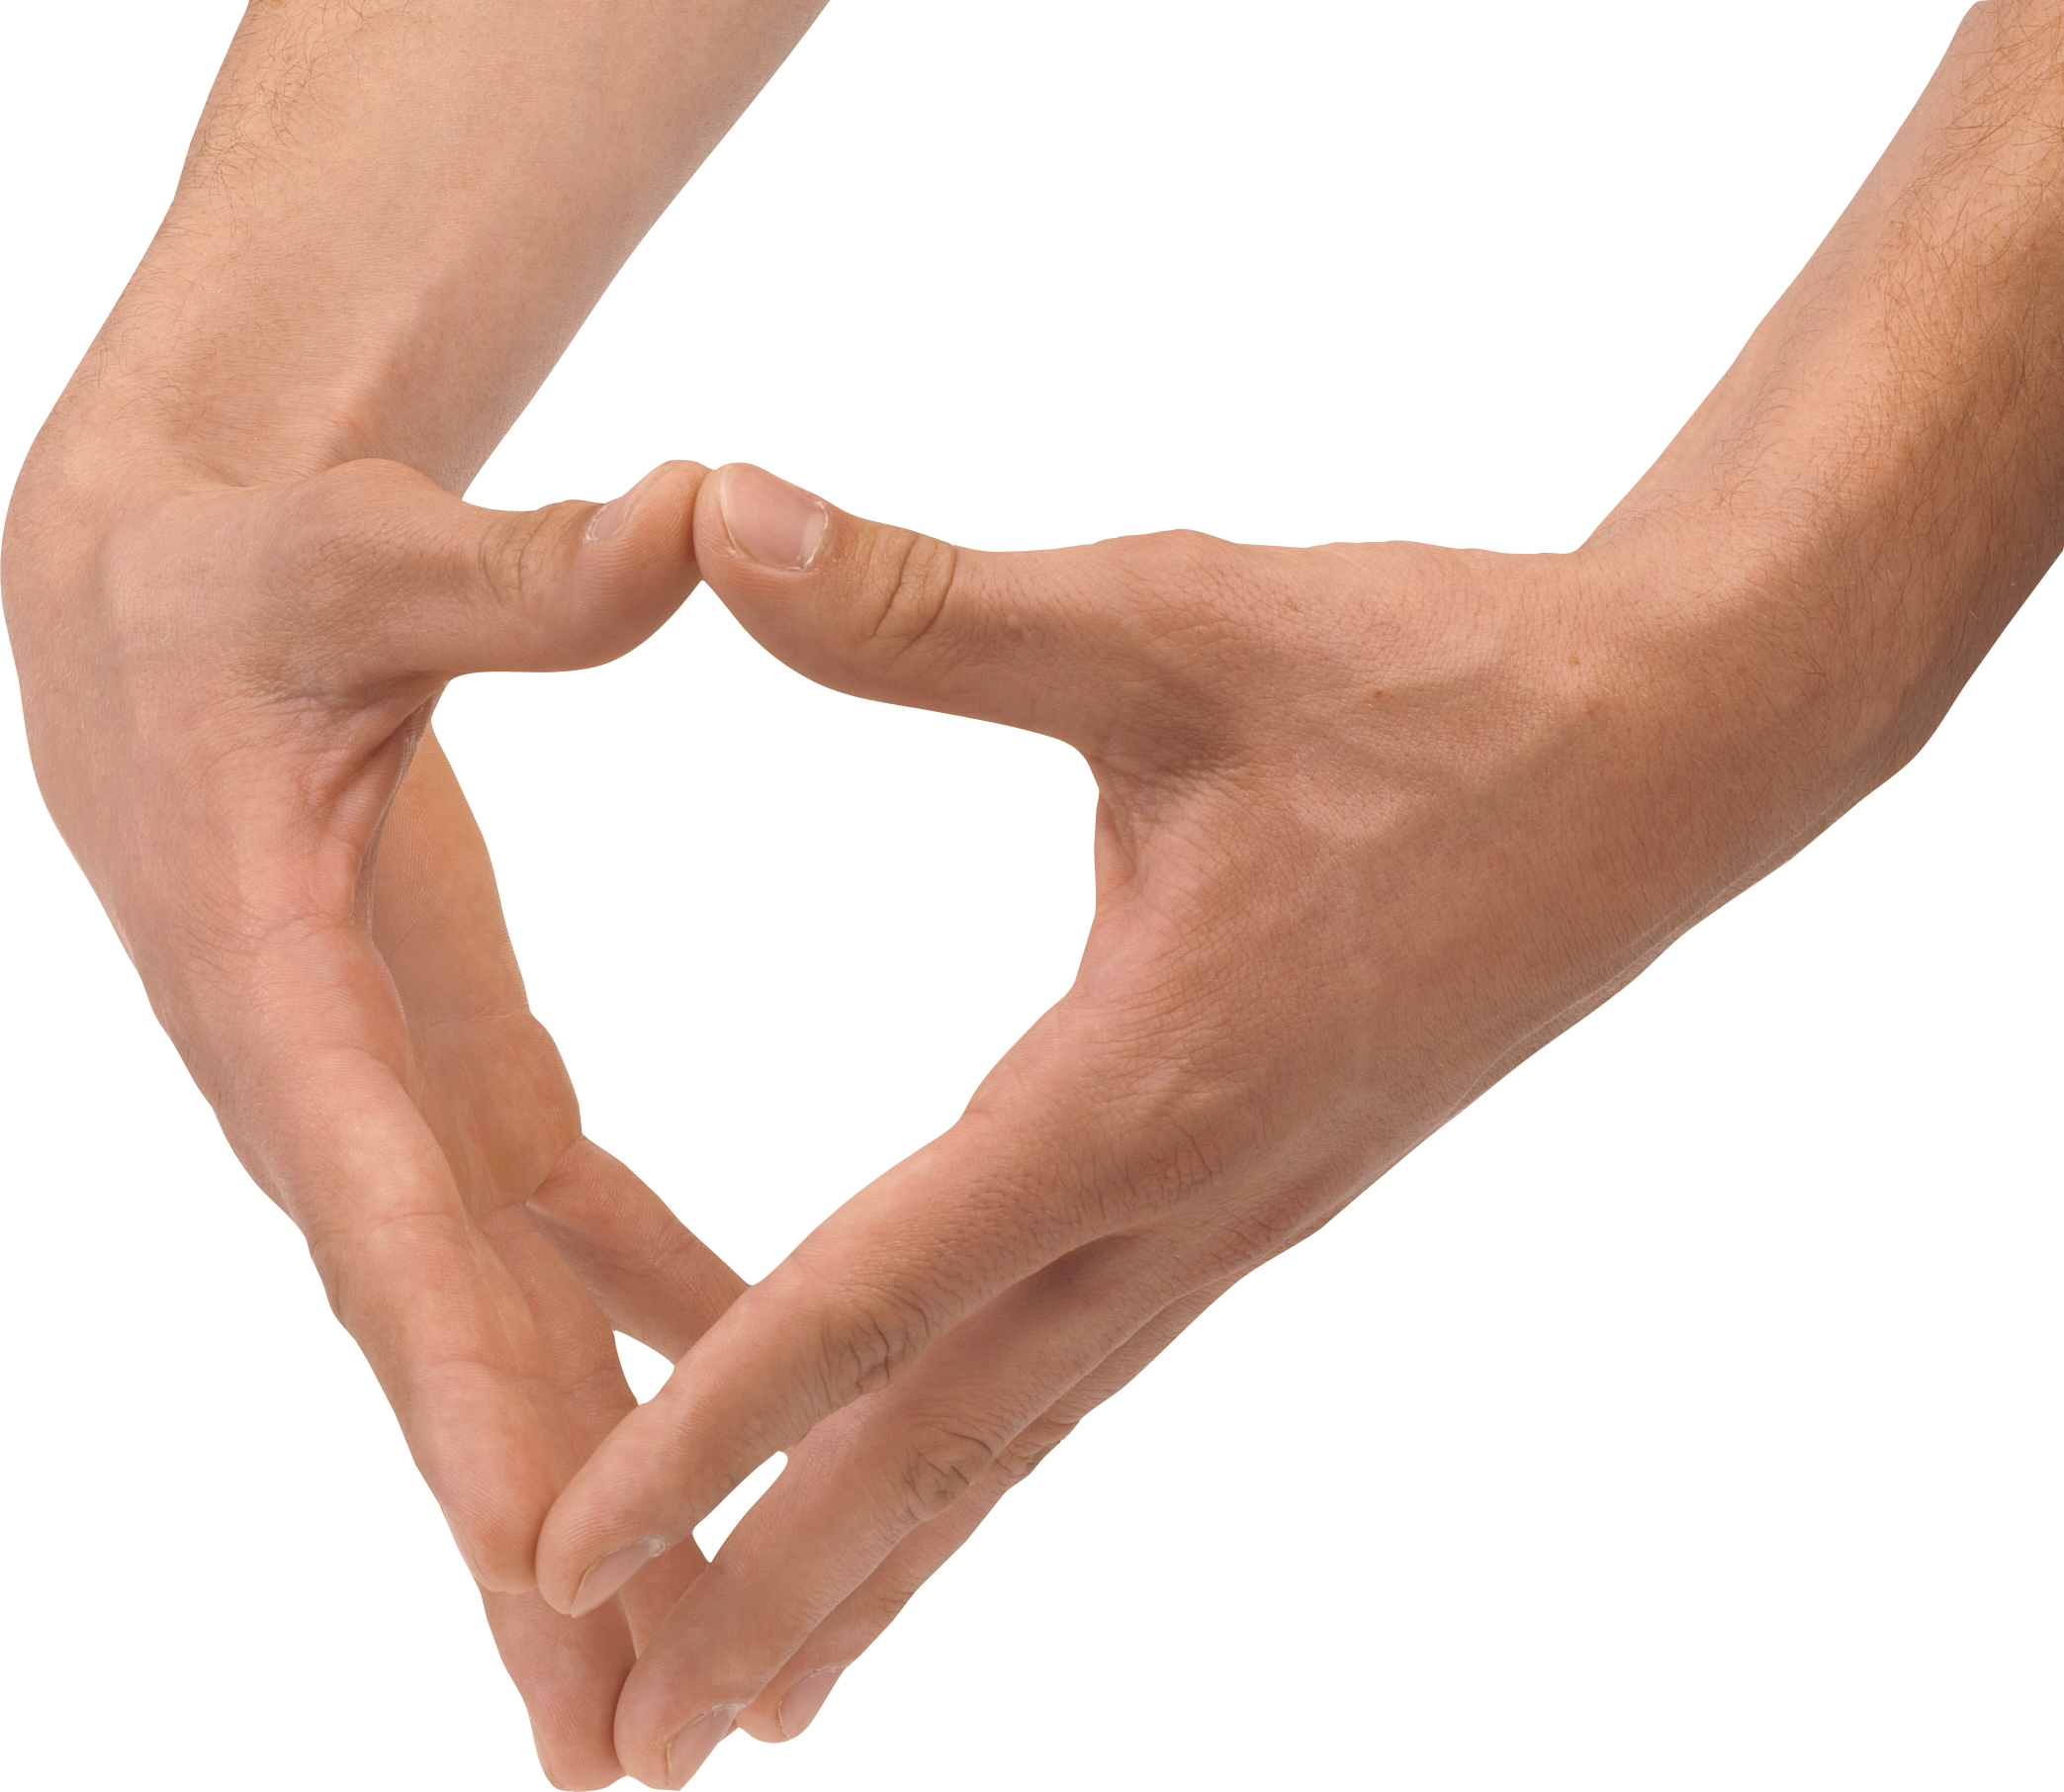 Hands png image purepng. Tomatoes clipart arm leg